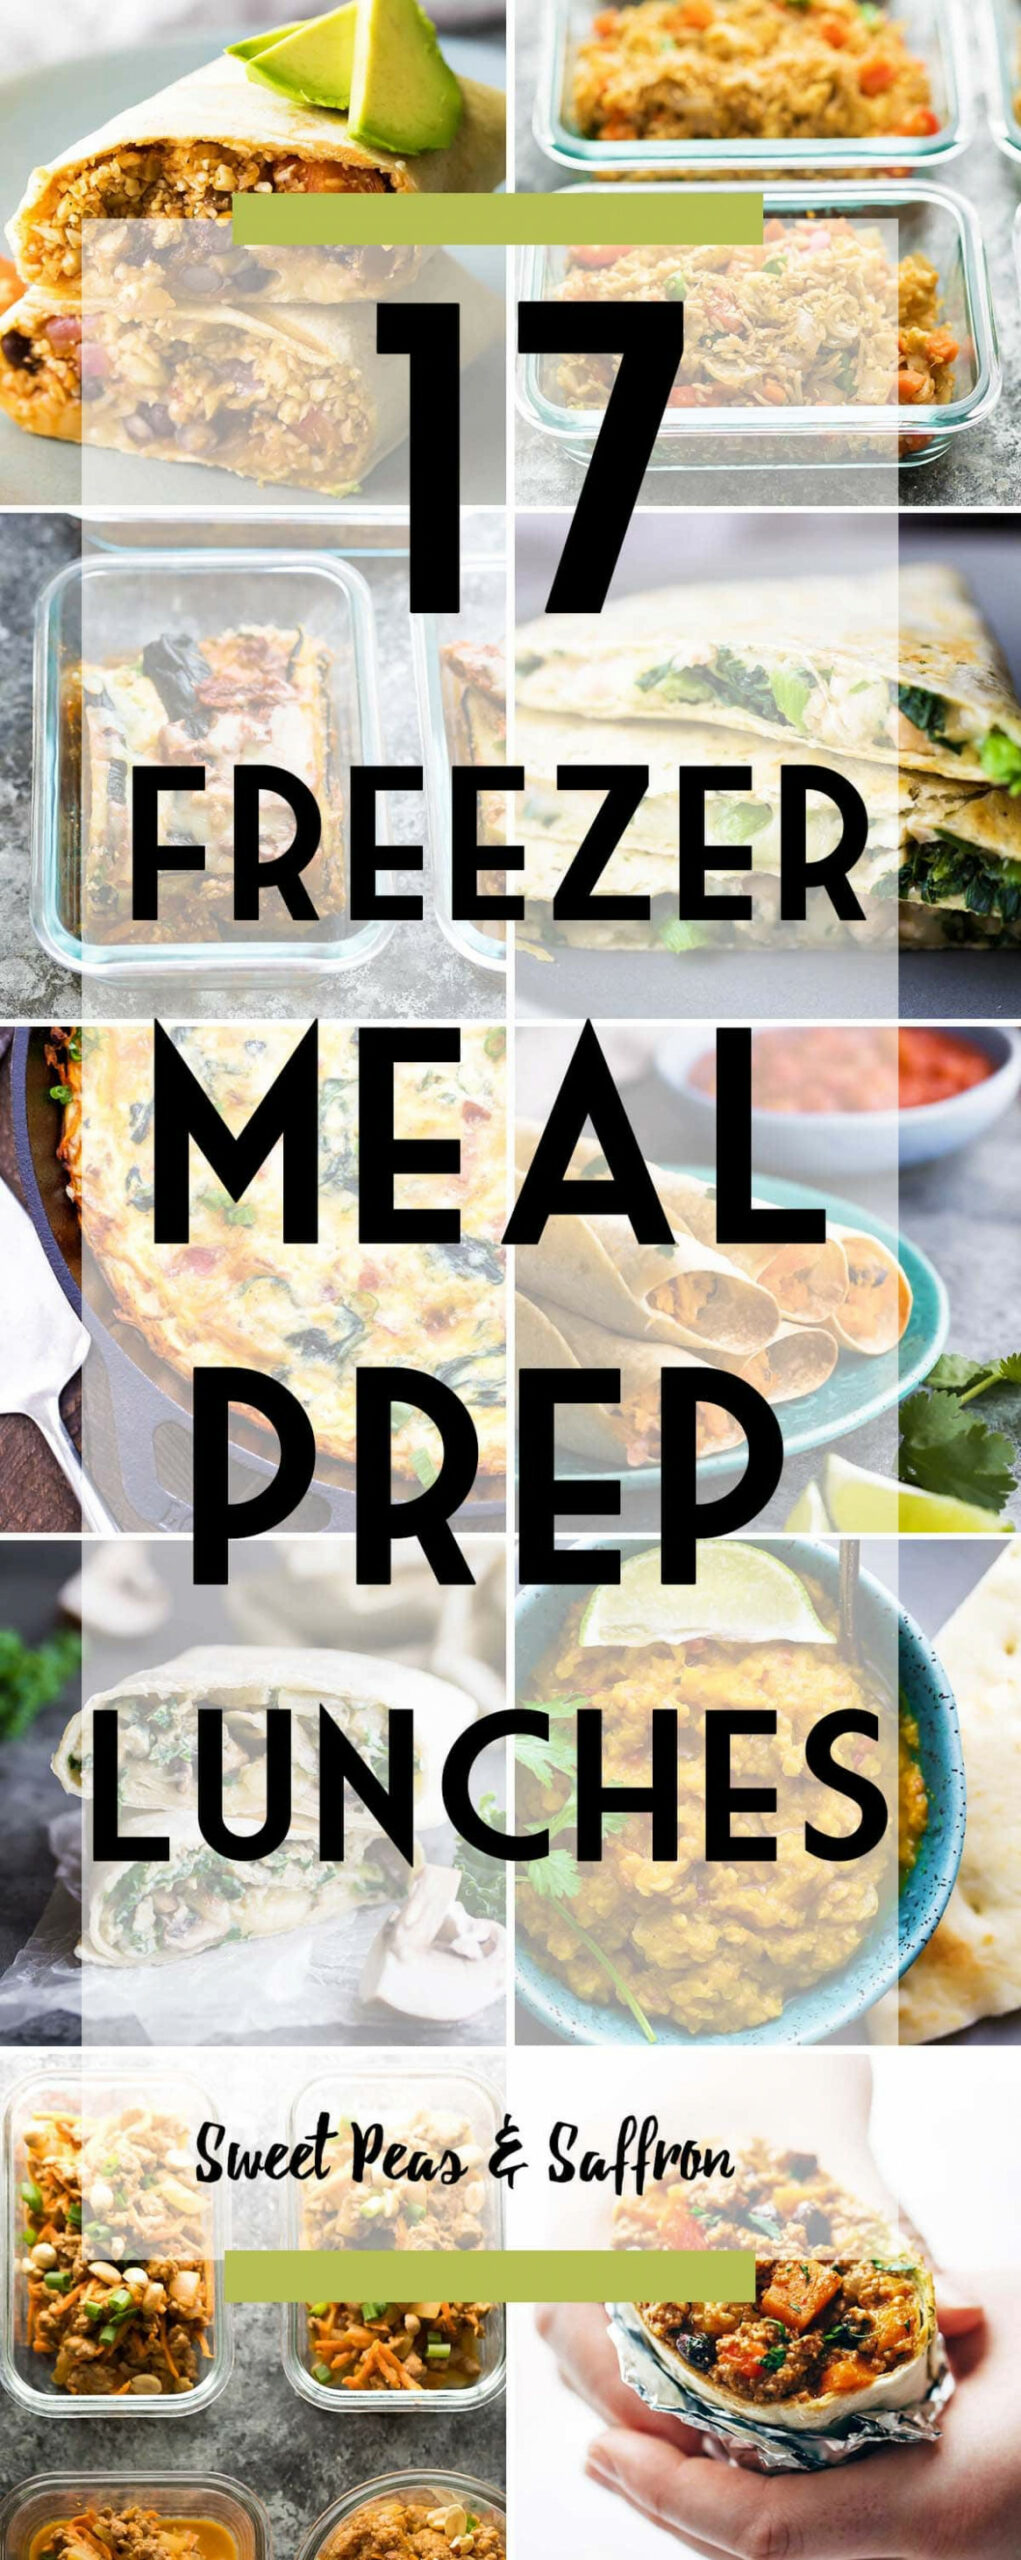 14 Freezer-Friendly Meal Prep Recipes | Sweet Peas and Saffron - food recipes you can freeze